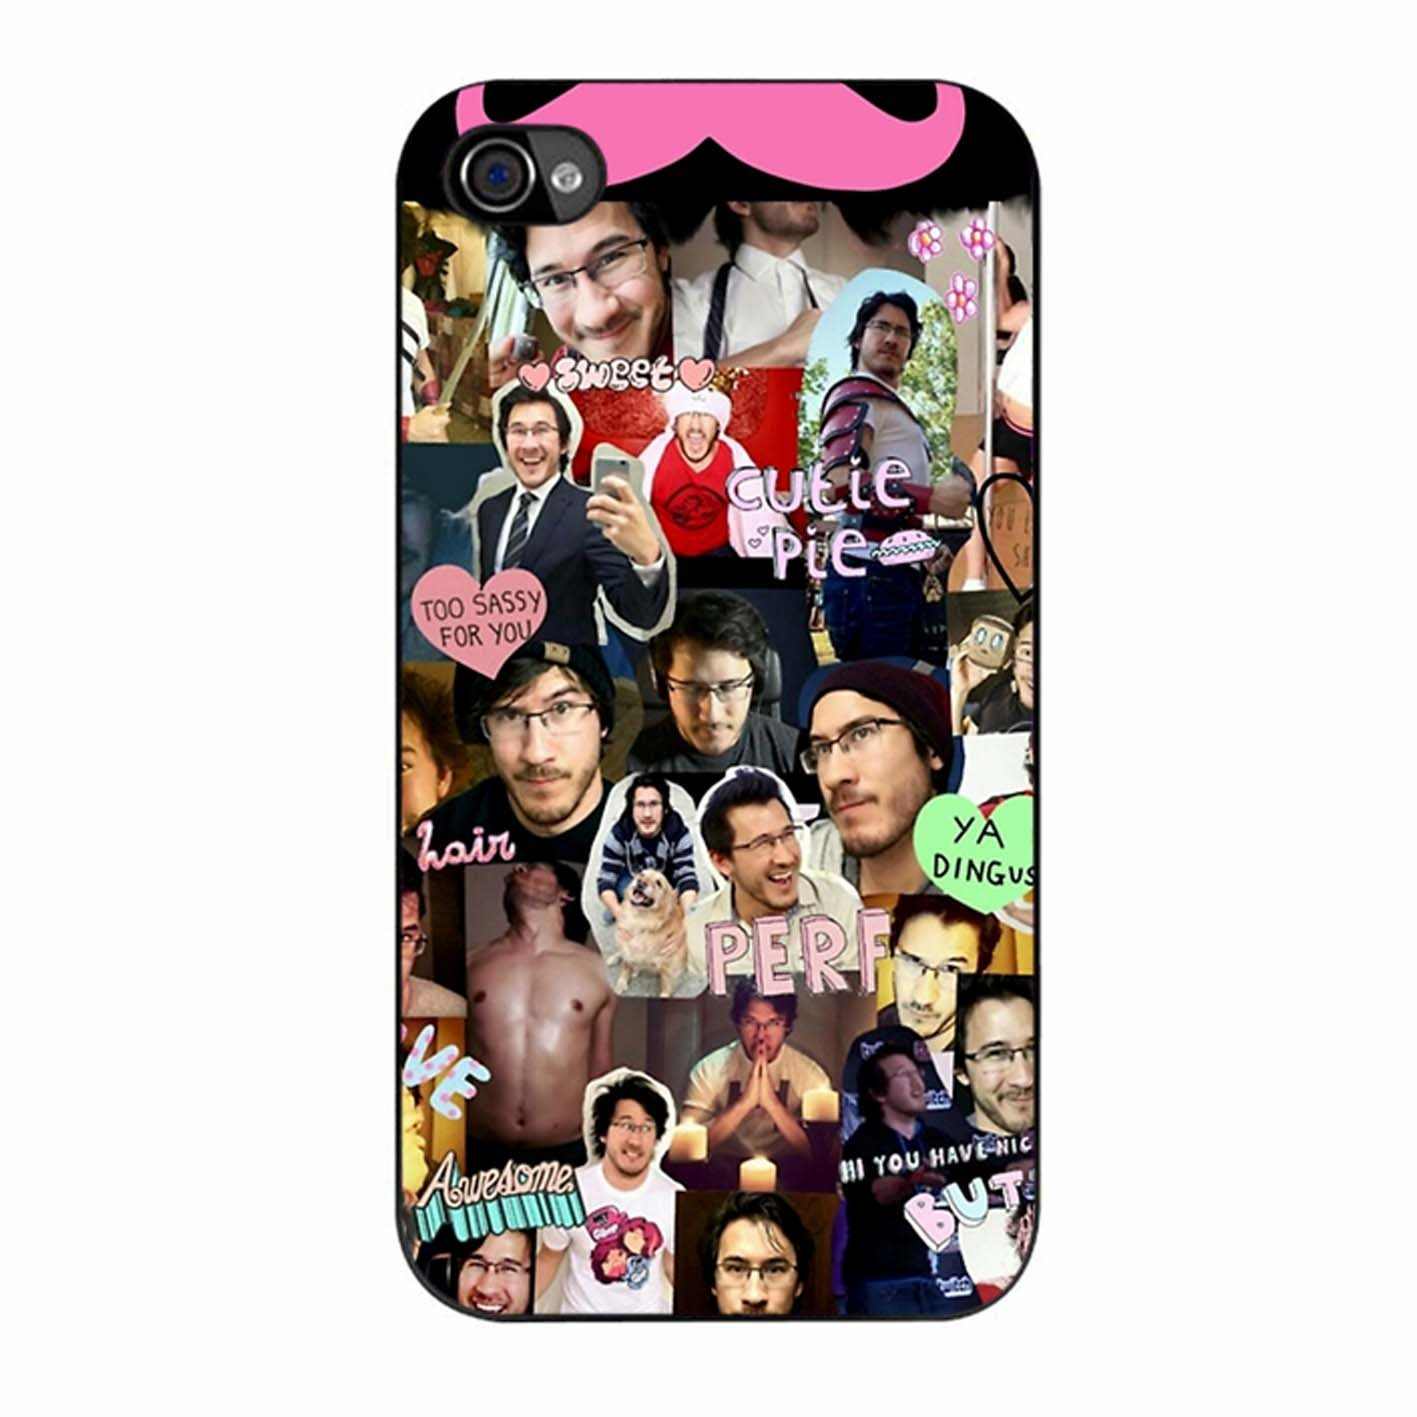 competitive price bdb7b ff939 Markiplier Tumblr Collage iPhone 4 Case: Amazon.co.uk: Electronics